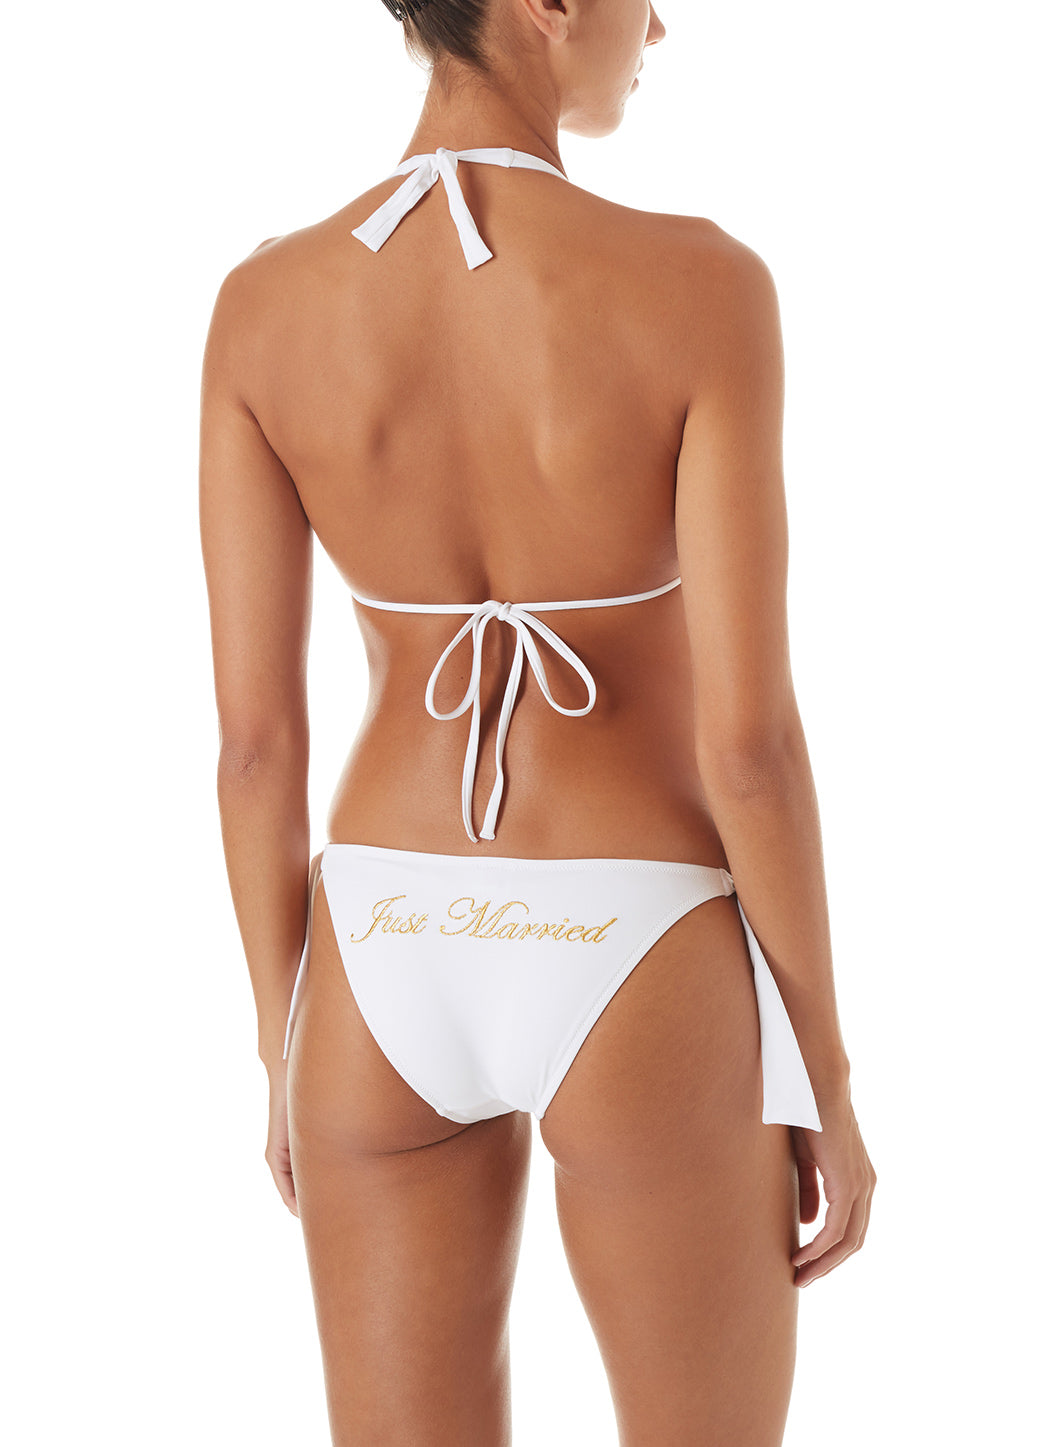 Just Married Maldives White Bikini  - Melissa Odabash Swimwear